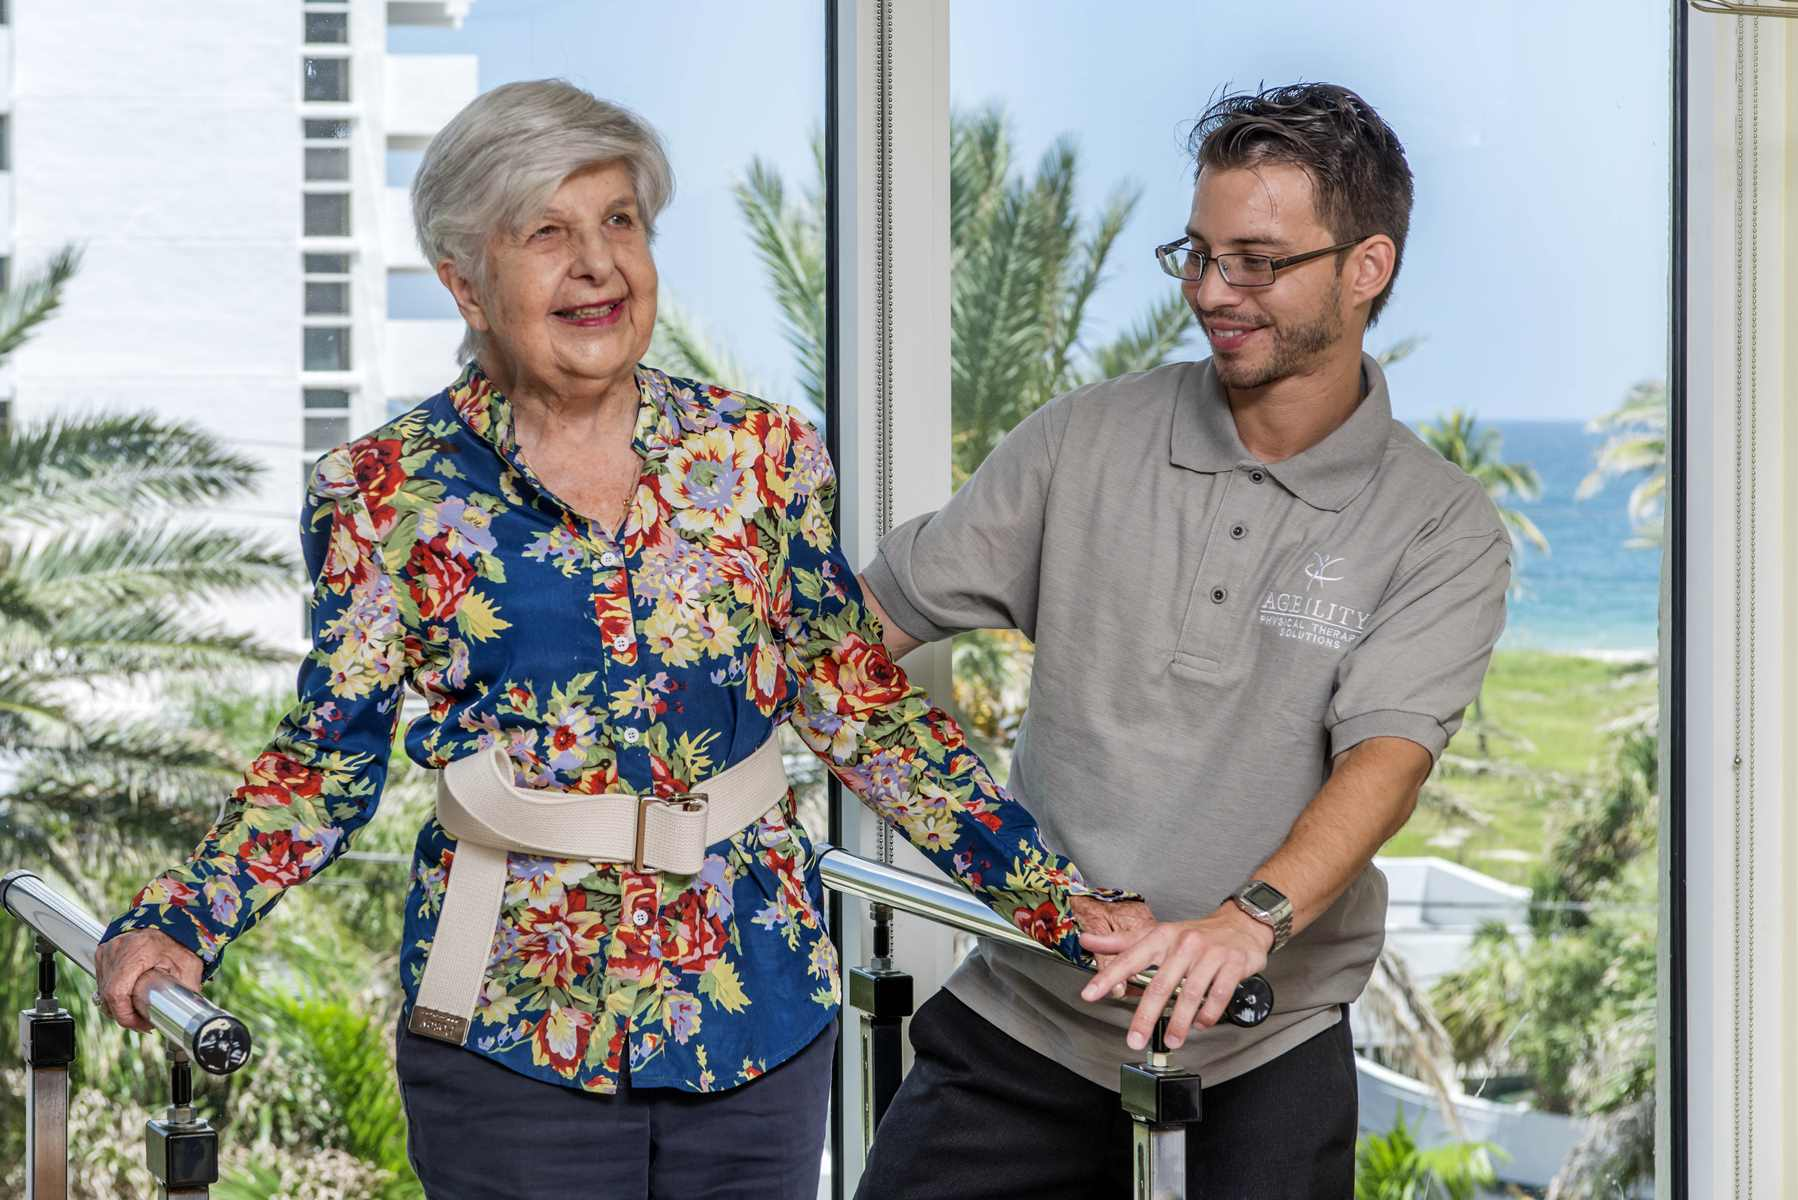 Physical Therapist Working with Elderly Patient on Exercises